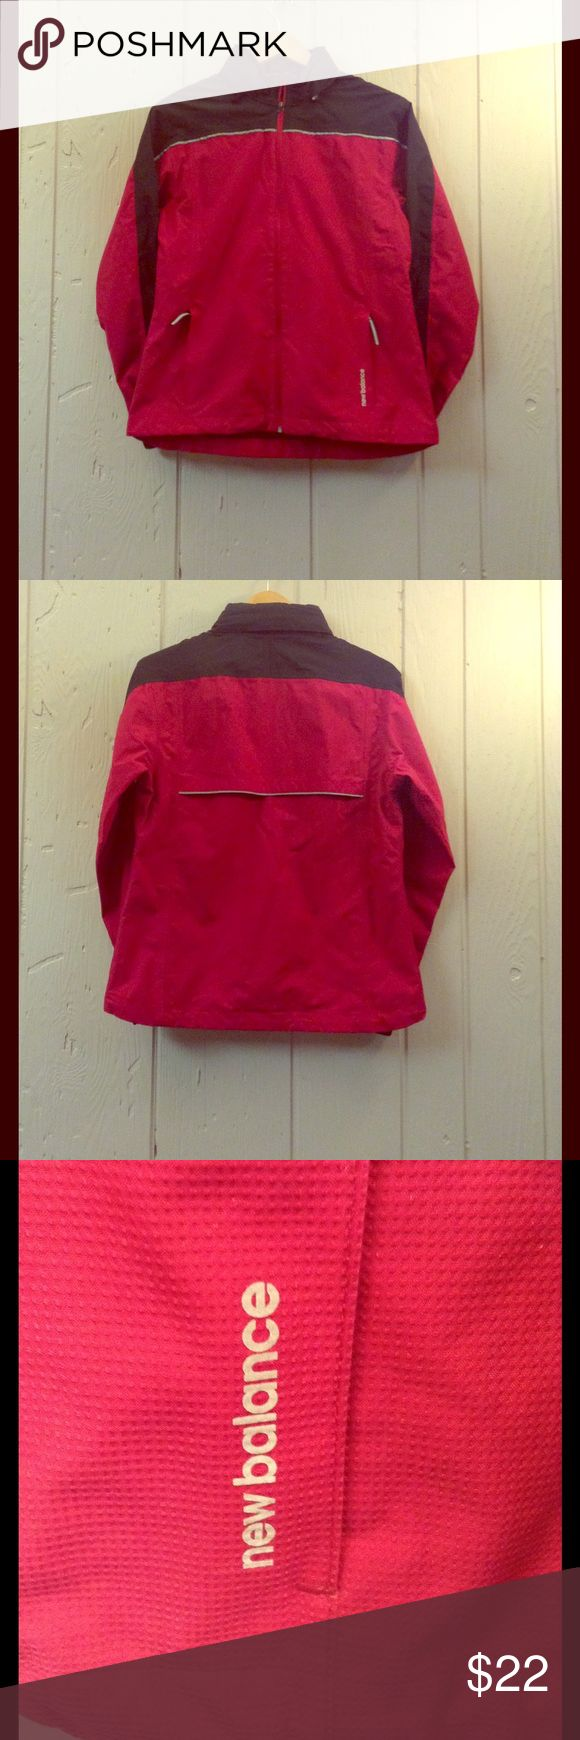 Women's vented activewear jacket. Like new lightweight New Balance windcheater  jacket. Berry red and black with reflective trim. Also has a hood in a zip up compartment.  Hidden drawstring inside. Relaxed fit. New Balance Jackets & Coats Utility Jackets